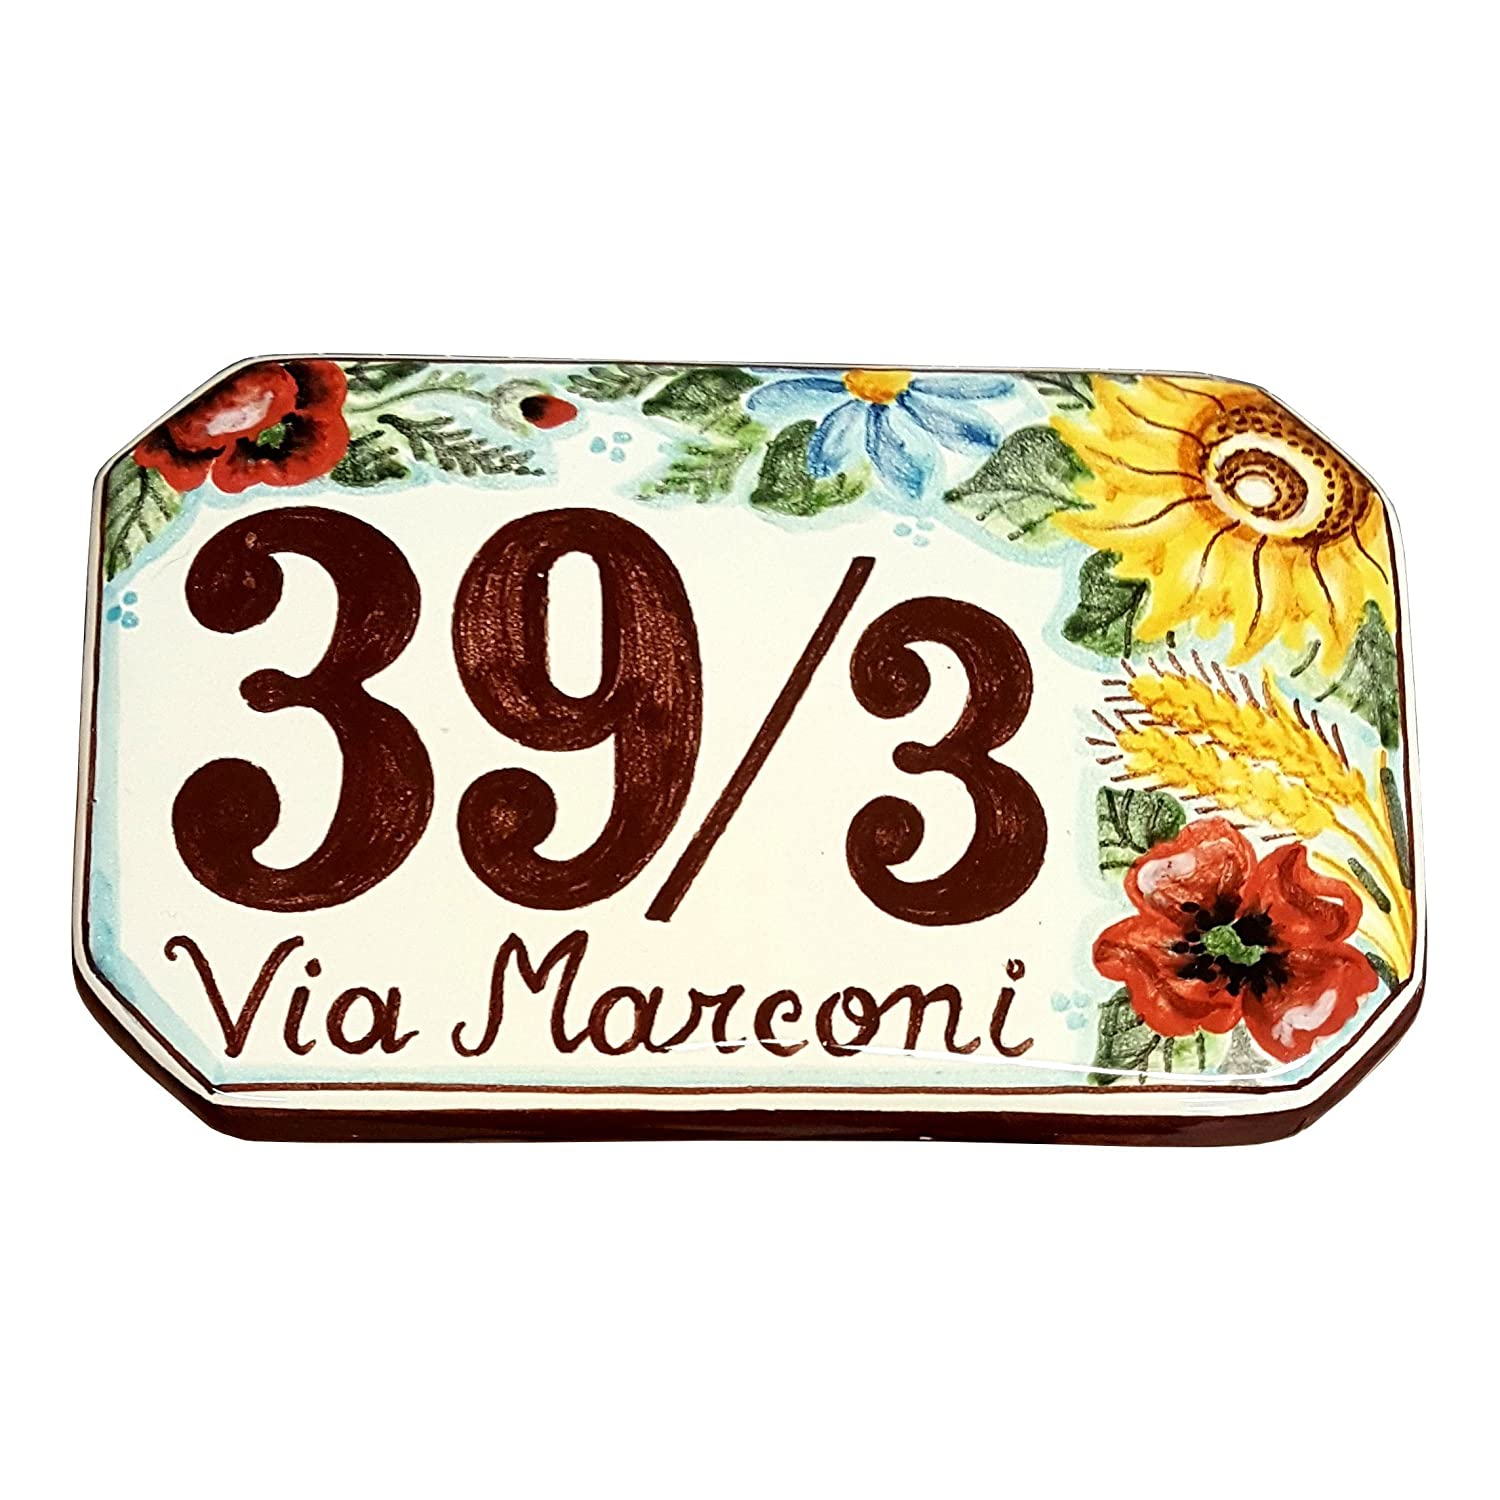 Amazon ceramiche darte parrini italian ceramic art pottery amazon ceramiche darte parrini italian ceramic art pottery tile custom house number civic address plaques decorative hand painted made in italy dailygadgetfo Choice Image